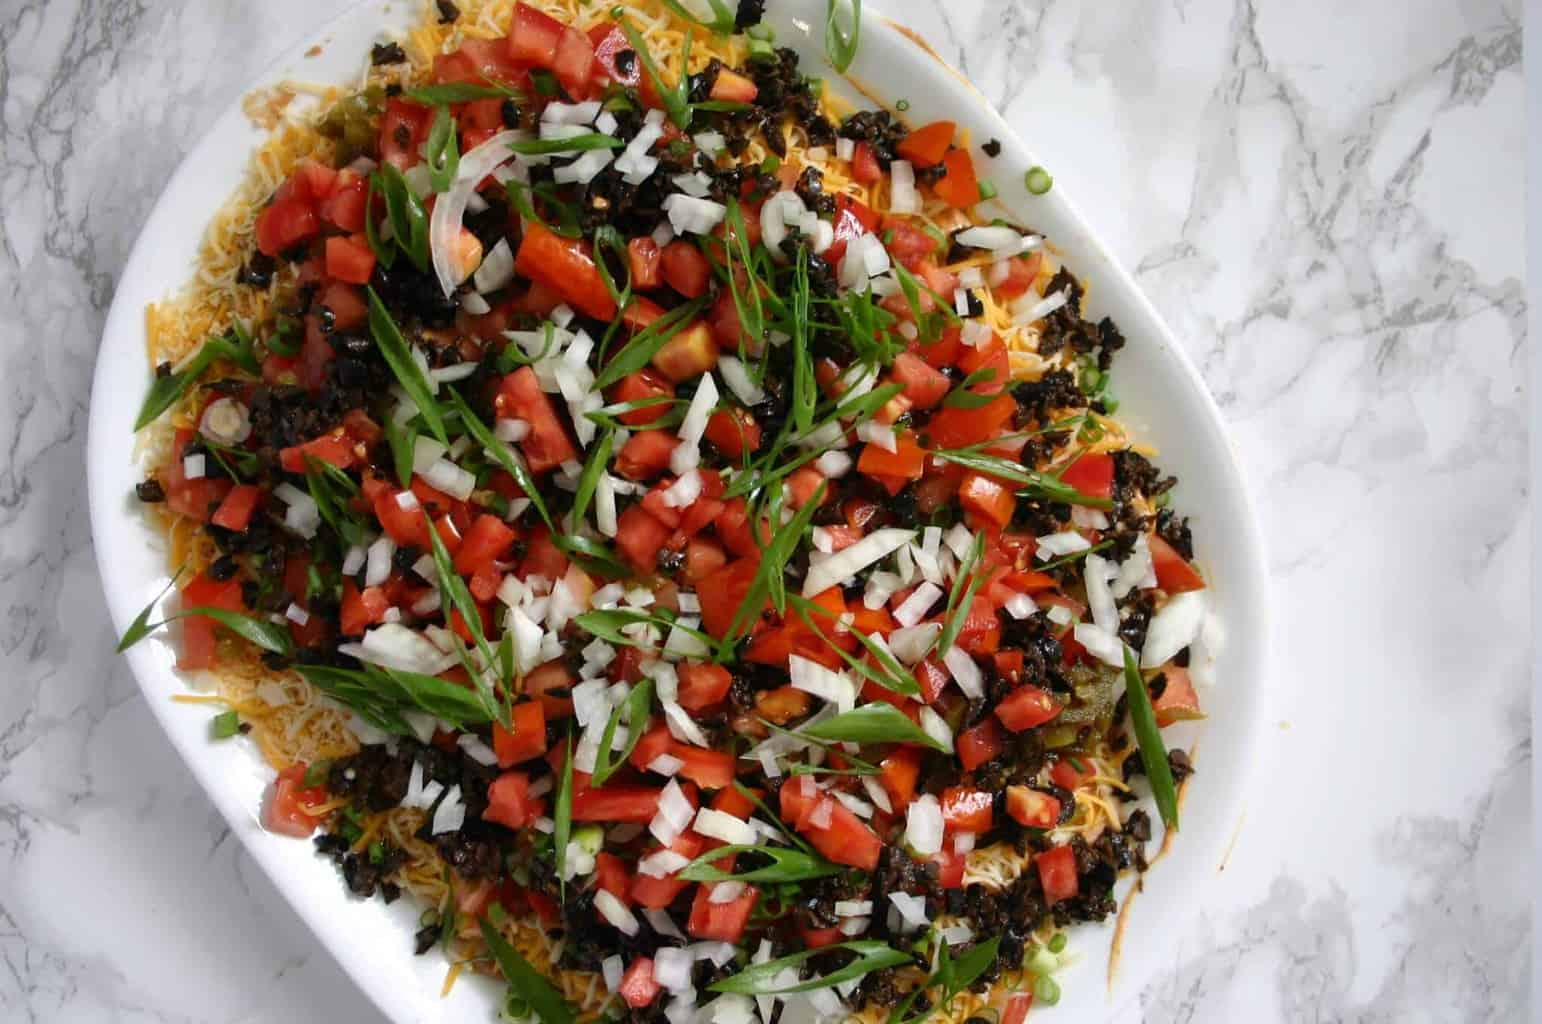 The best easy taco dip recipe - The perfect football party food!